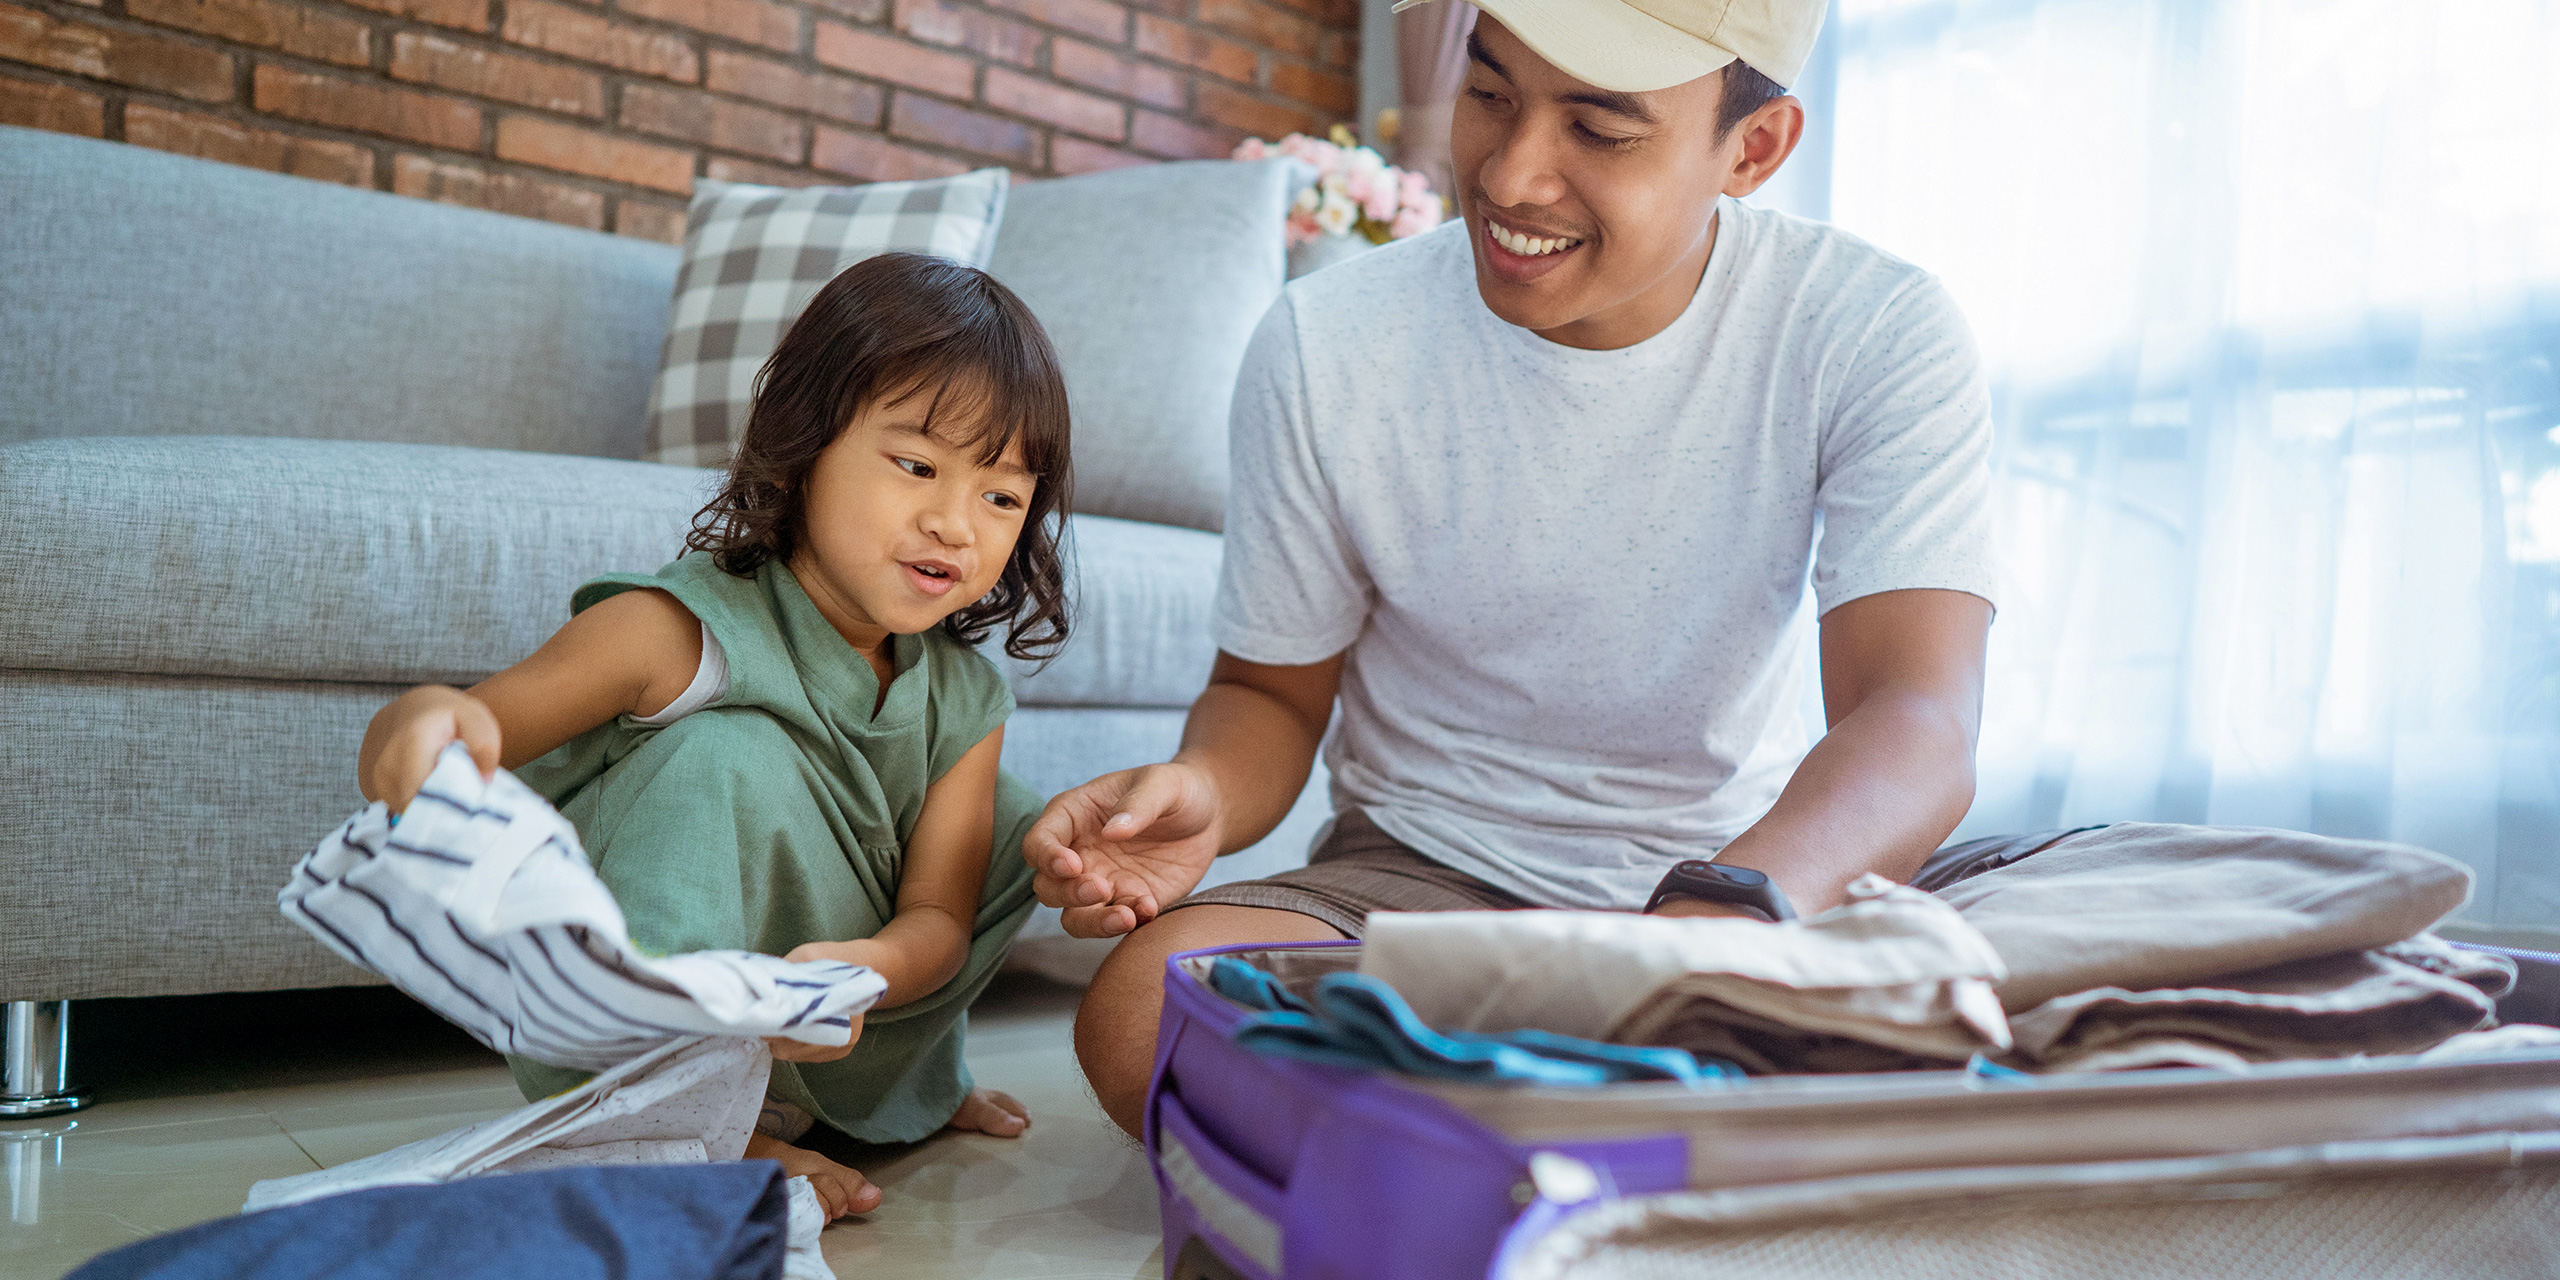 dad and kid happily prepare for holiday. packing up some clothes in suitcase for vacation; Courtesy of Odua Images/Shutterstock